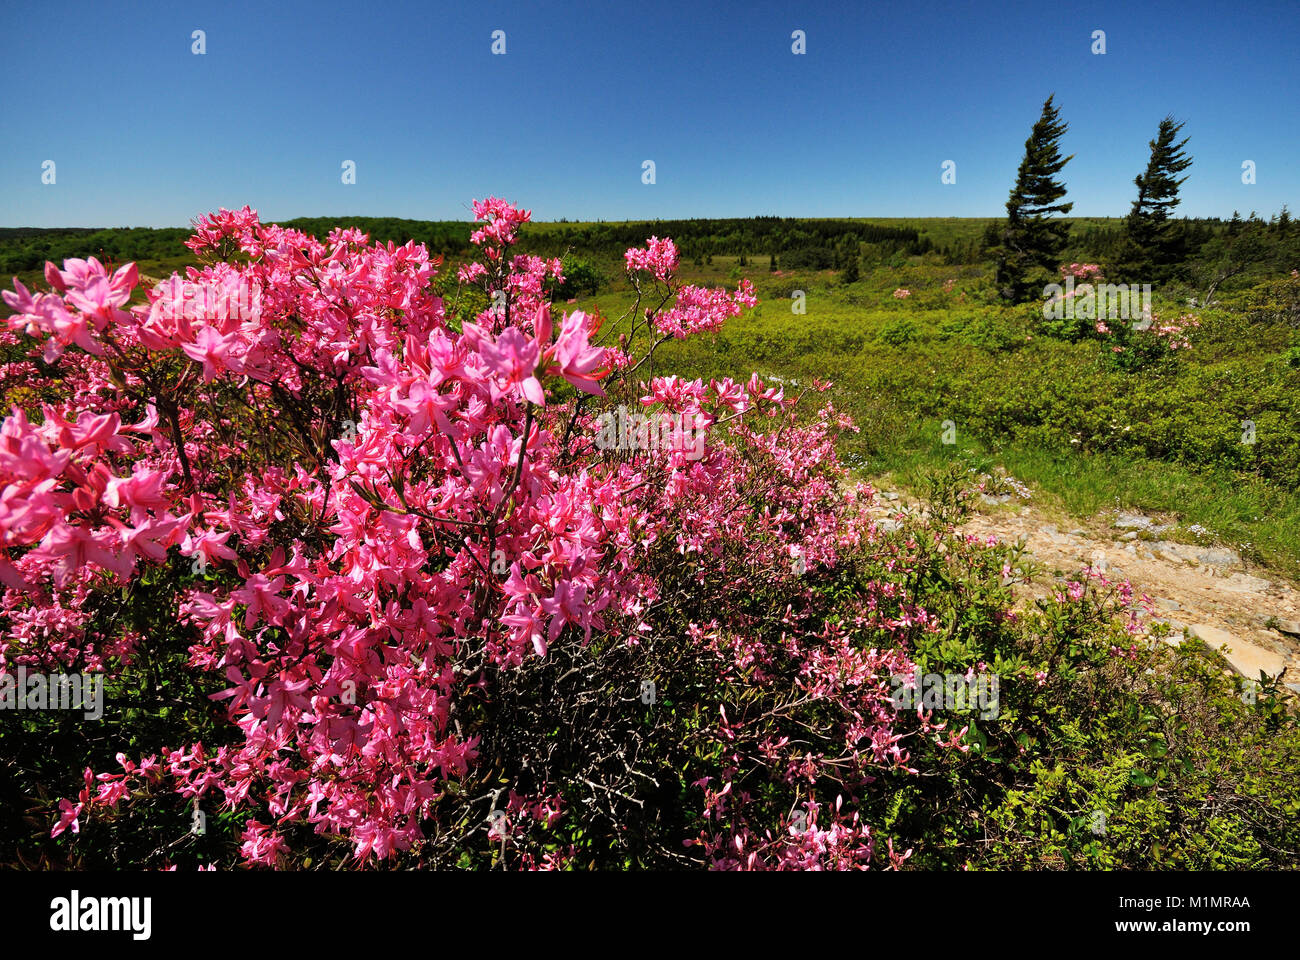 Dolly Sods decked out in Pink Azalea West Virginia - Stock Image